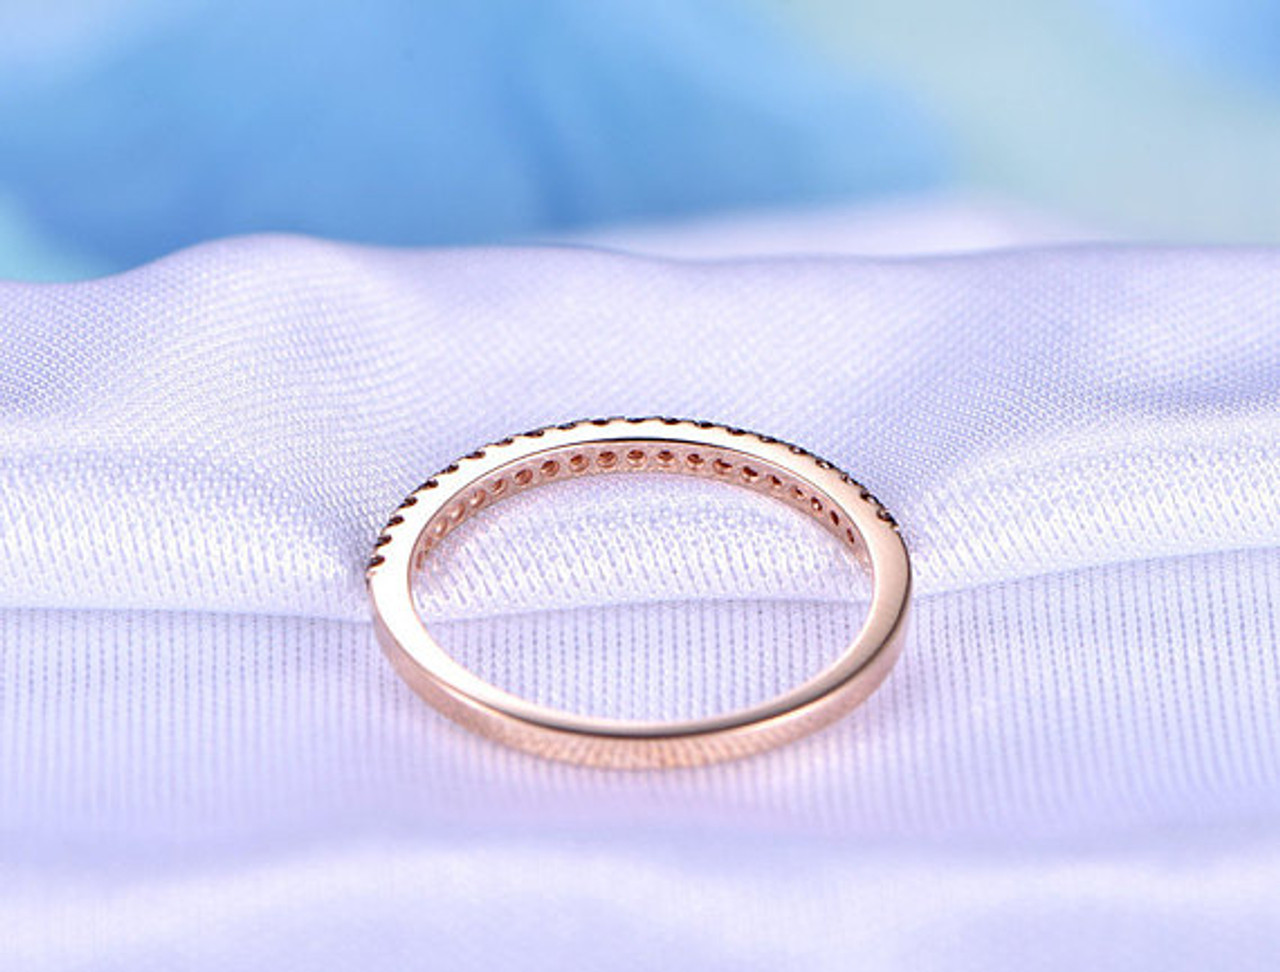 Gemstone Engagement Ring Solid 14k Rose Gold Ring Cushion Cut 5mm Natural Red Garnet Ring Floral Promise Ring Half Eternity Wedding Ring